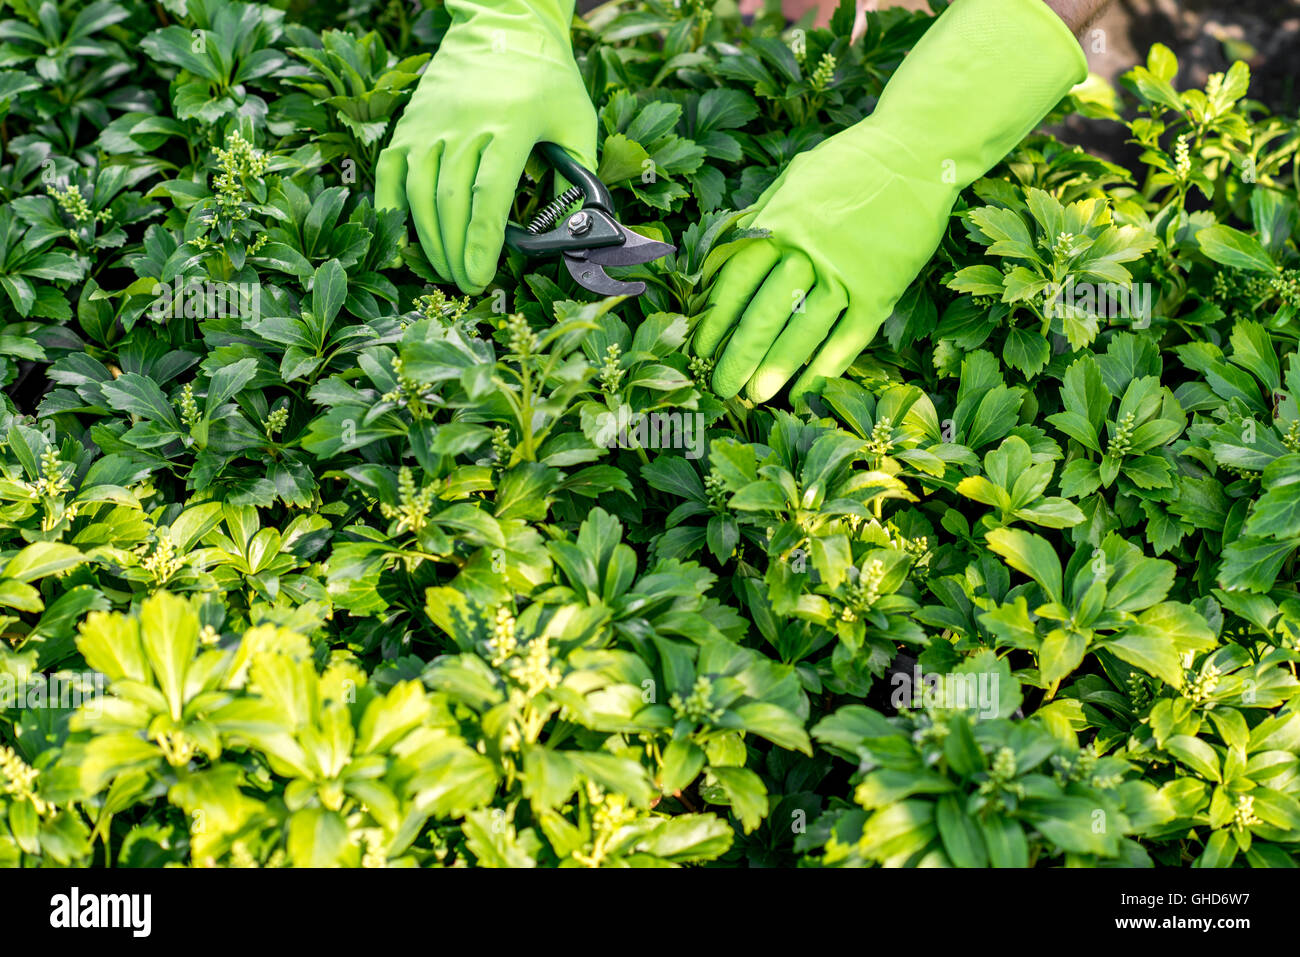 Pruning plants with scissors - Stock Image